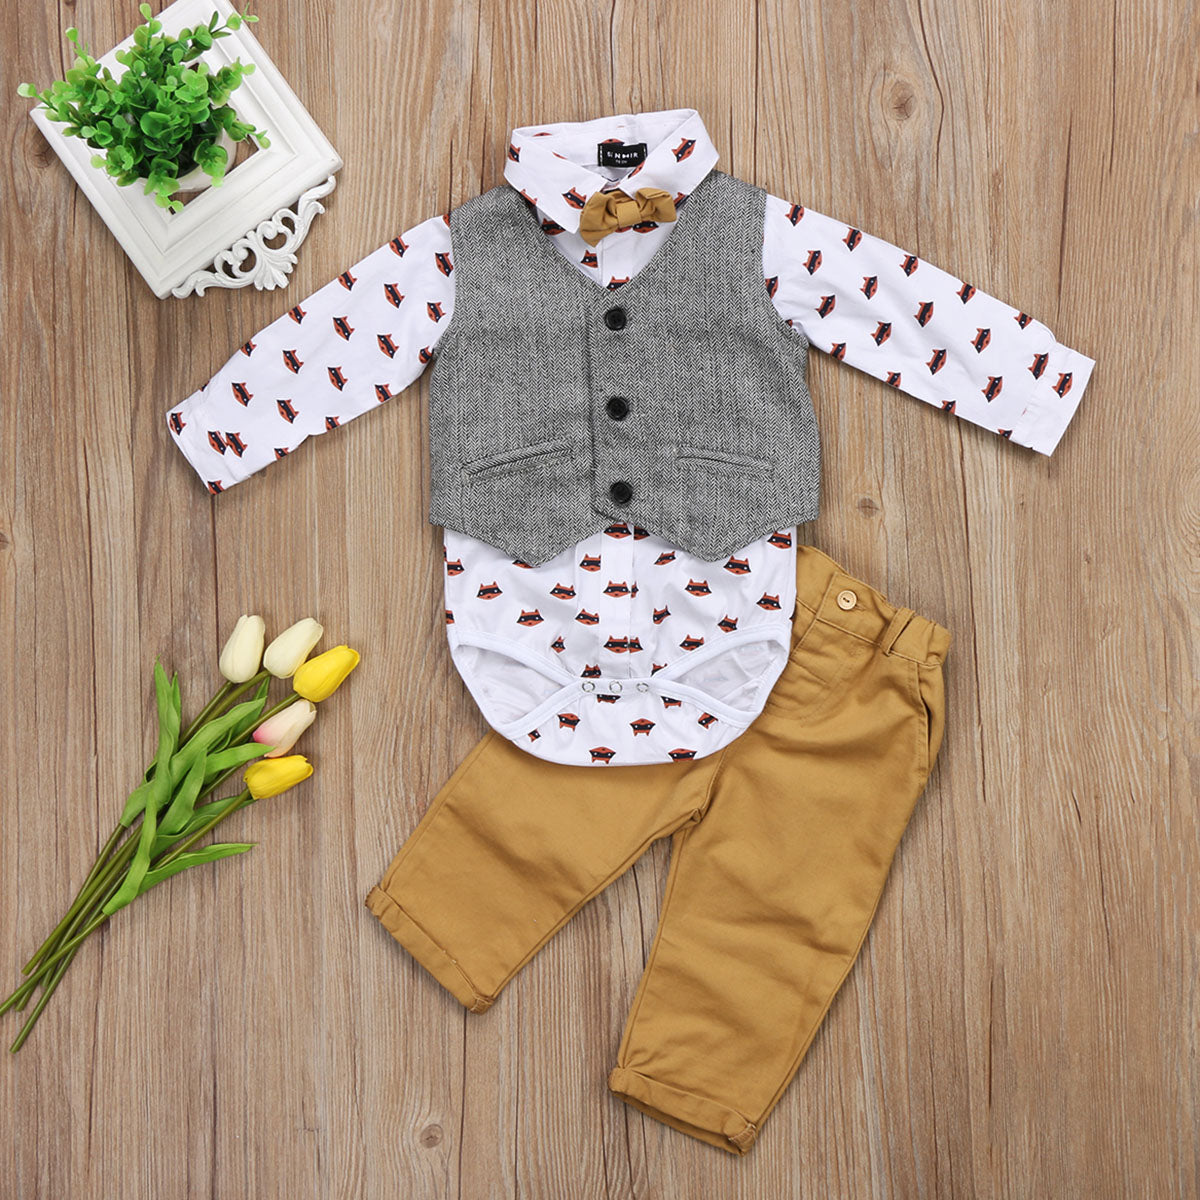 0-24 Months Newborn Infant Toddler Baby Boys Formal Suit Solid Vest Waistcoat Cartoon Pirnted Shirts Top Pants 3Pcs Set